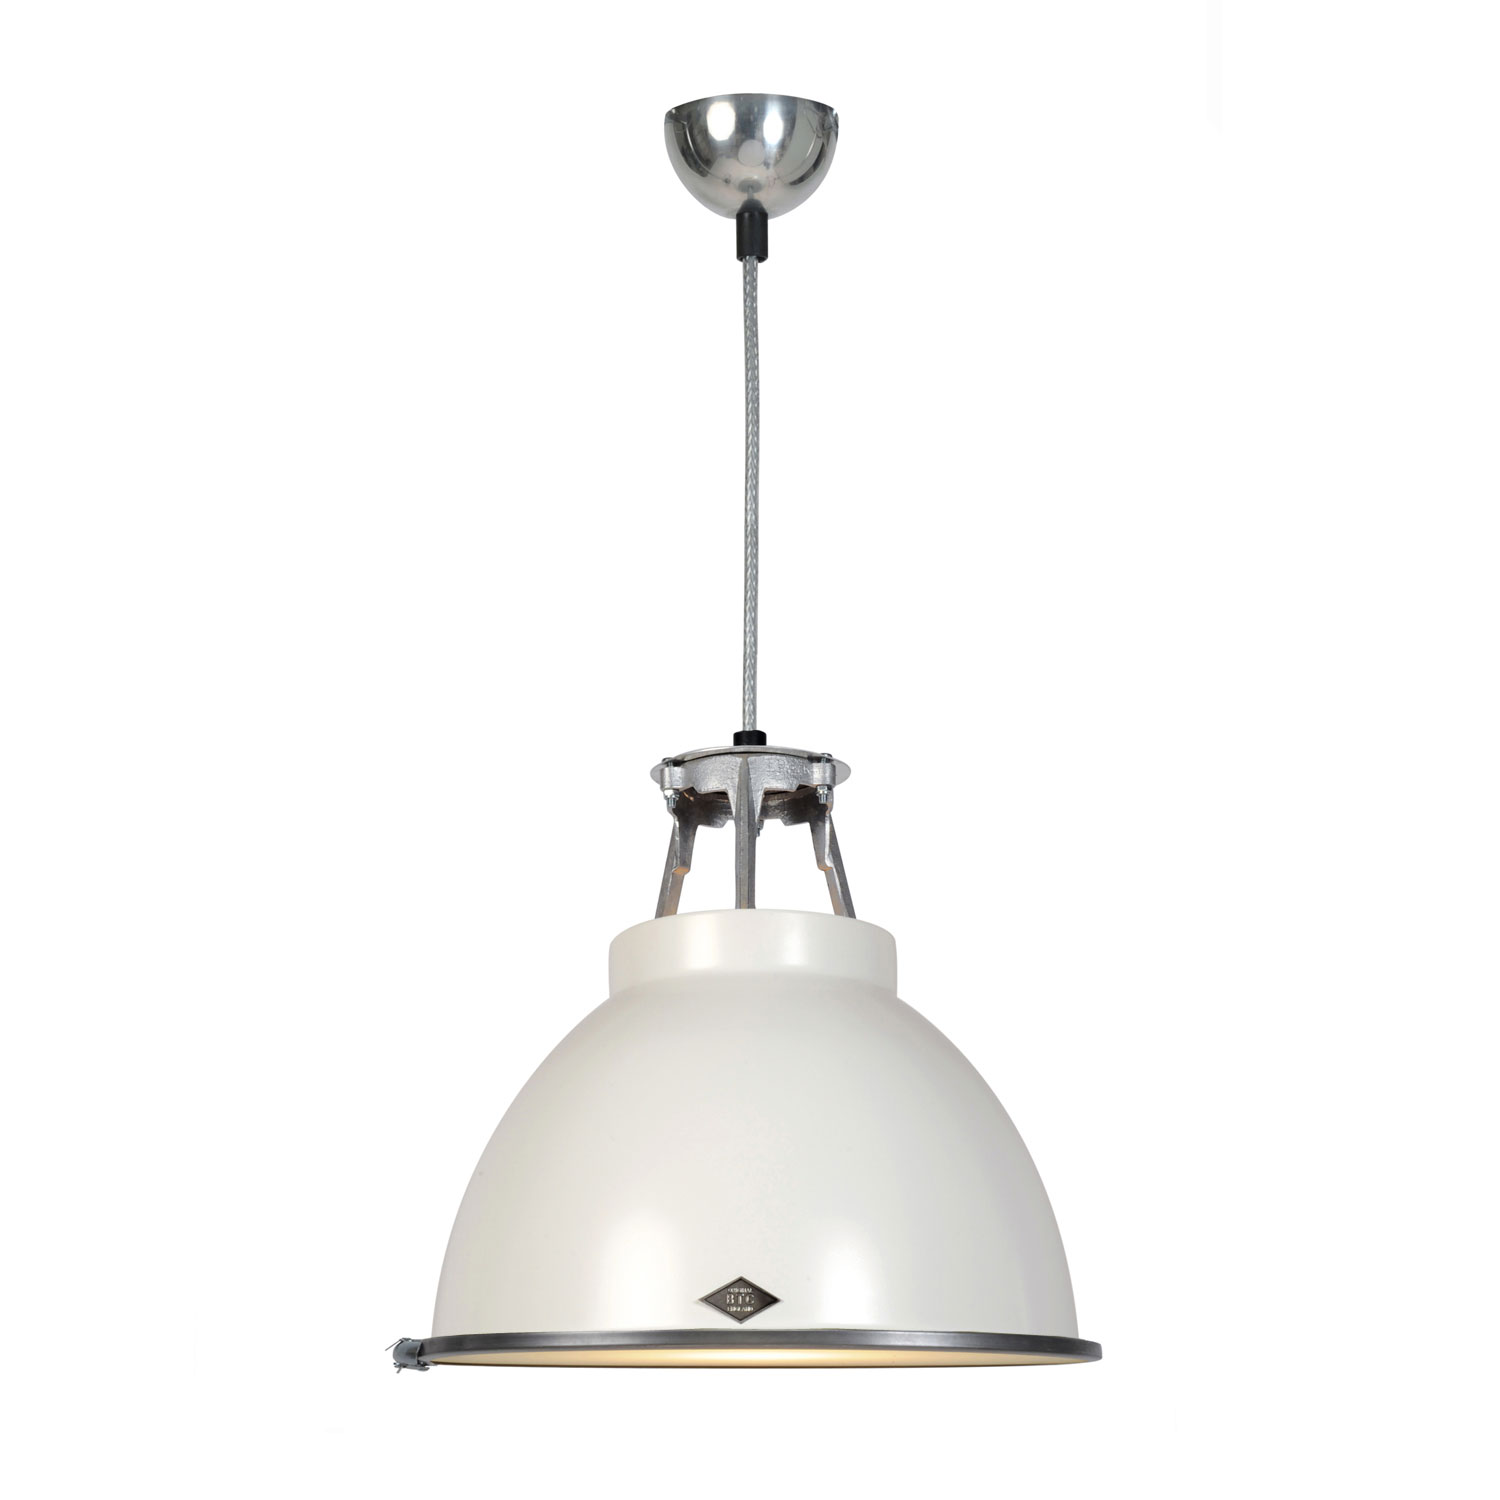 Titan Size 1 Pendant Light, White with Etched Glass